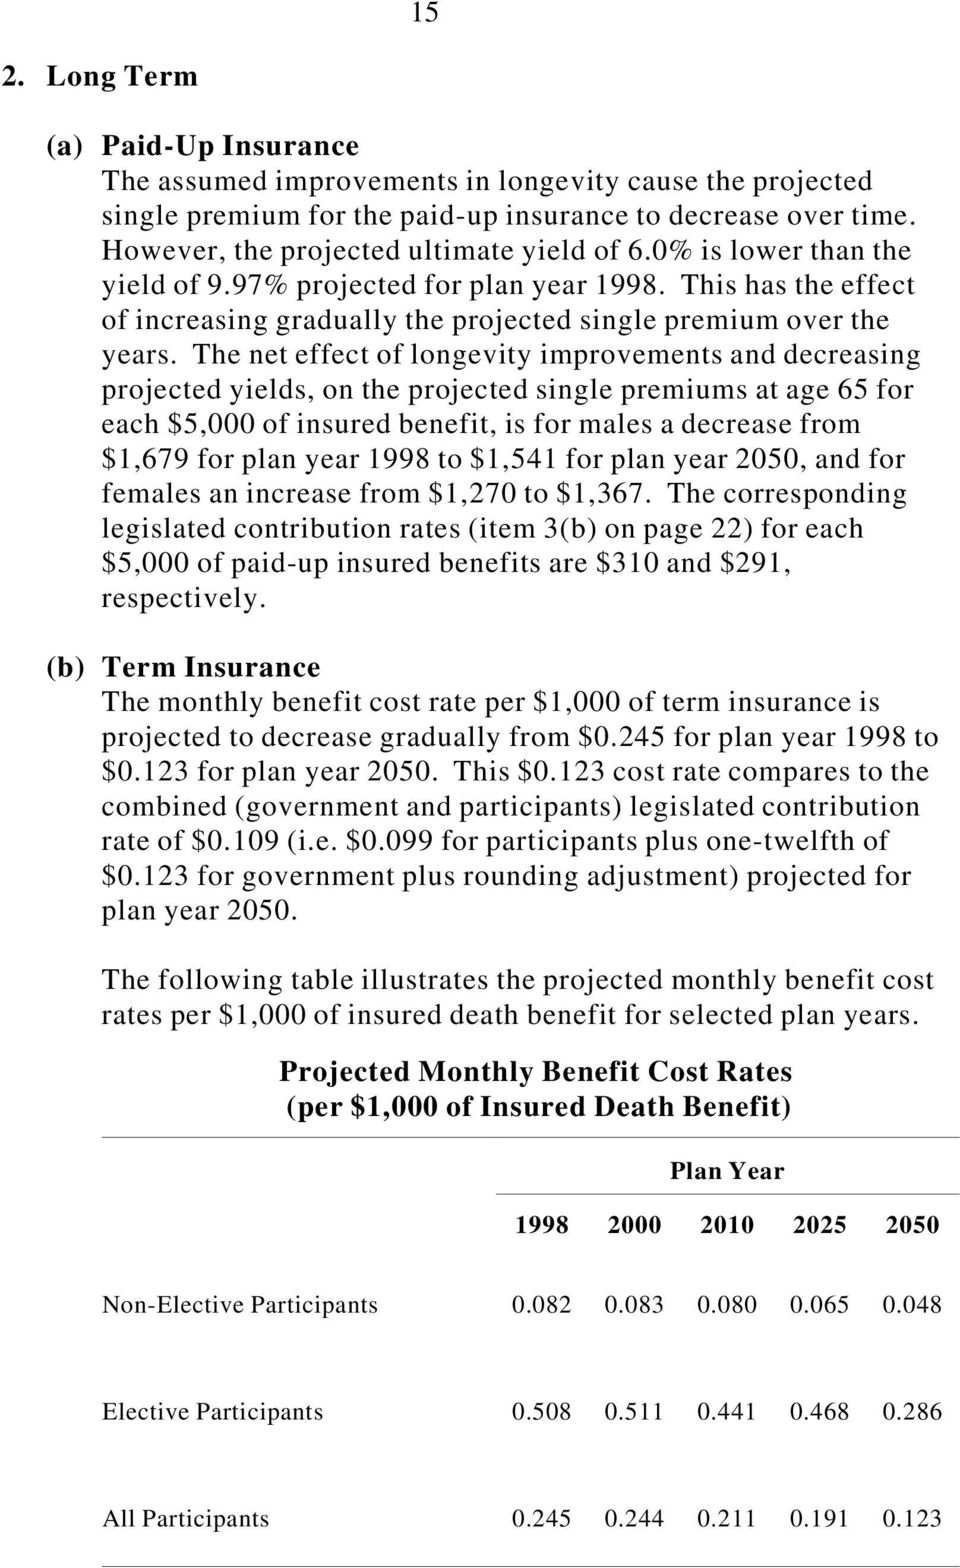 The net effect of longevity improvements and decreasing projected yields, on the projected single premiums at age 65 for each $5,000 of insured benefit, is for males a decrease from $1,679 for plan